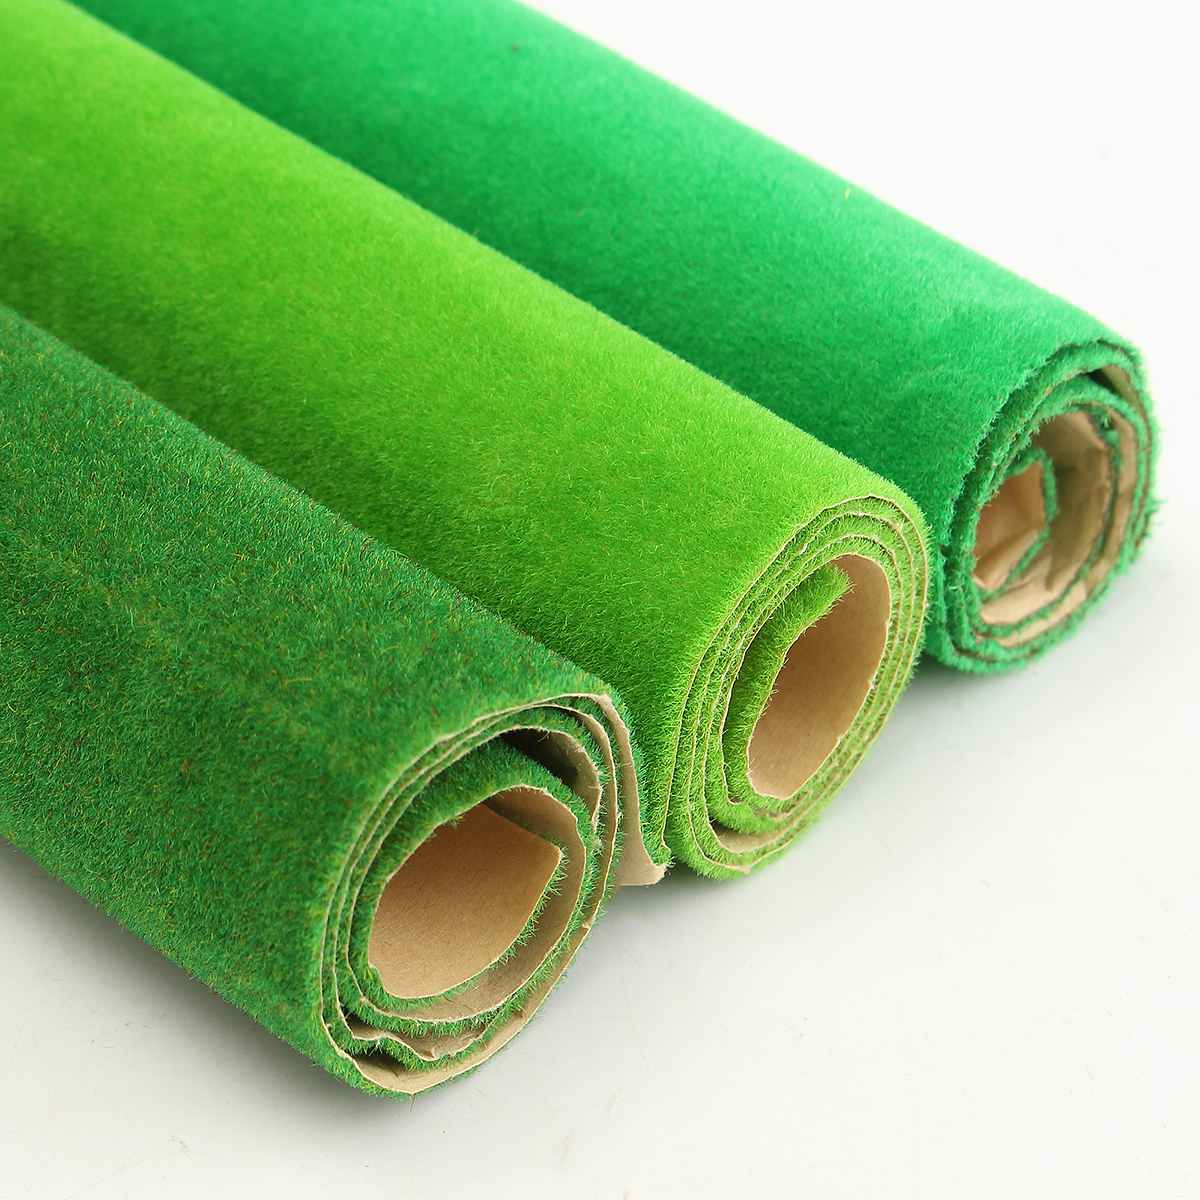 50x50cm 3 Colors Grass Mat Green Artificial Lawns Carpets For Building Model Garden Moss Miniatures Model Making Floor Decorate